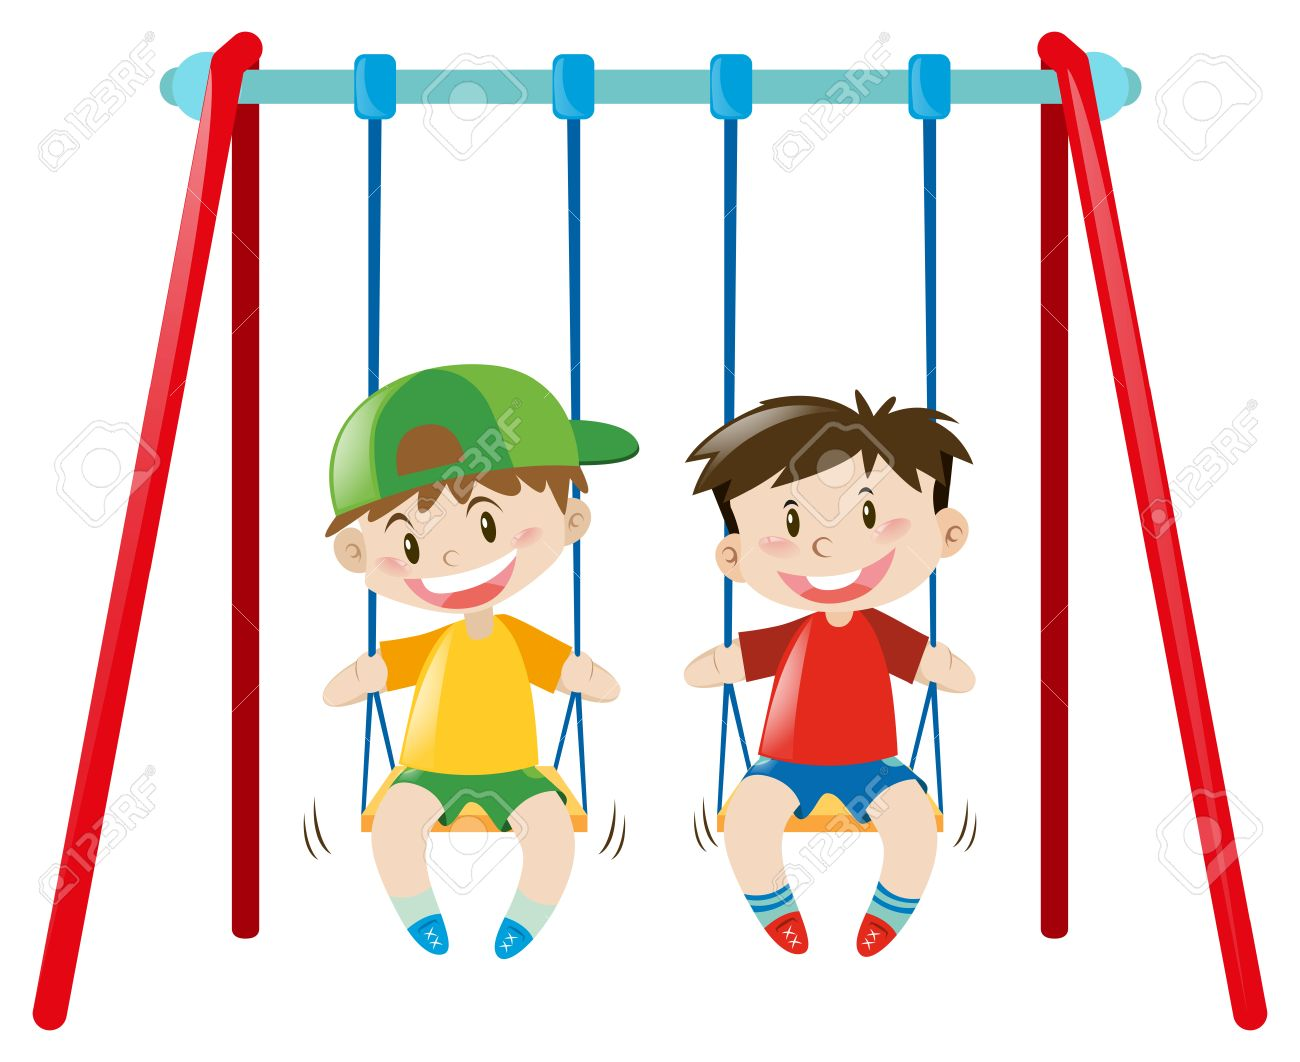 1300x1062 Collection Of Kids Swing Clipart High Quality, Free Cliparts